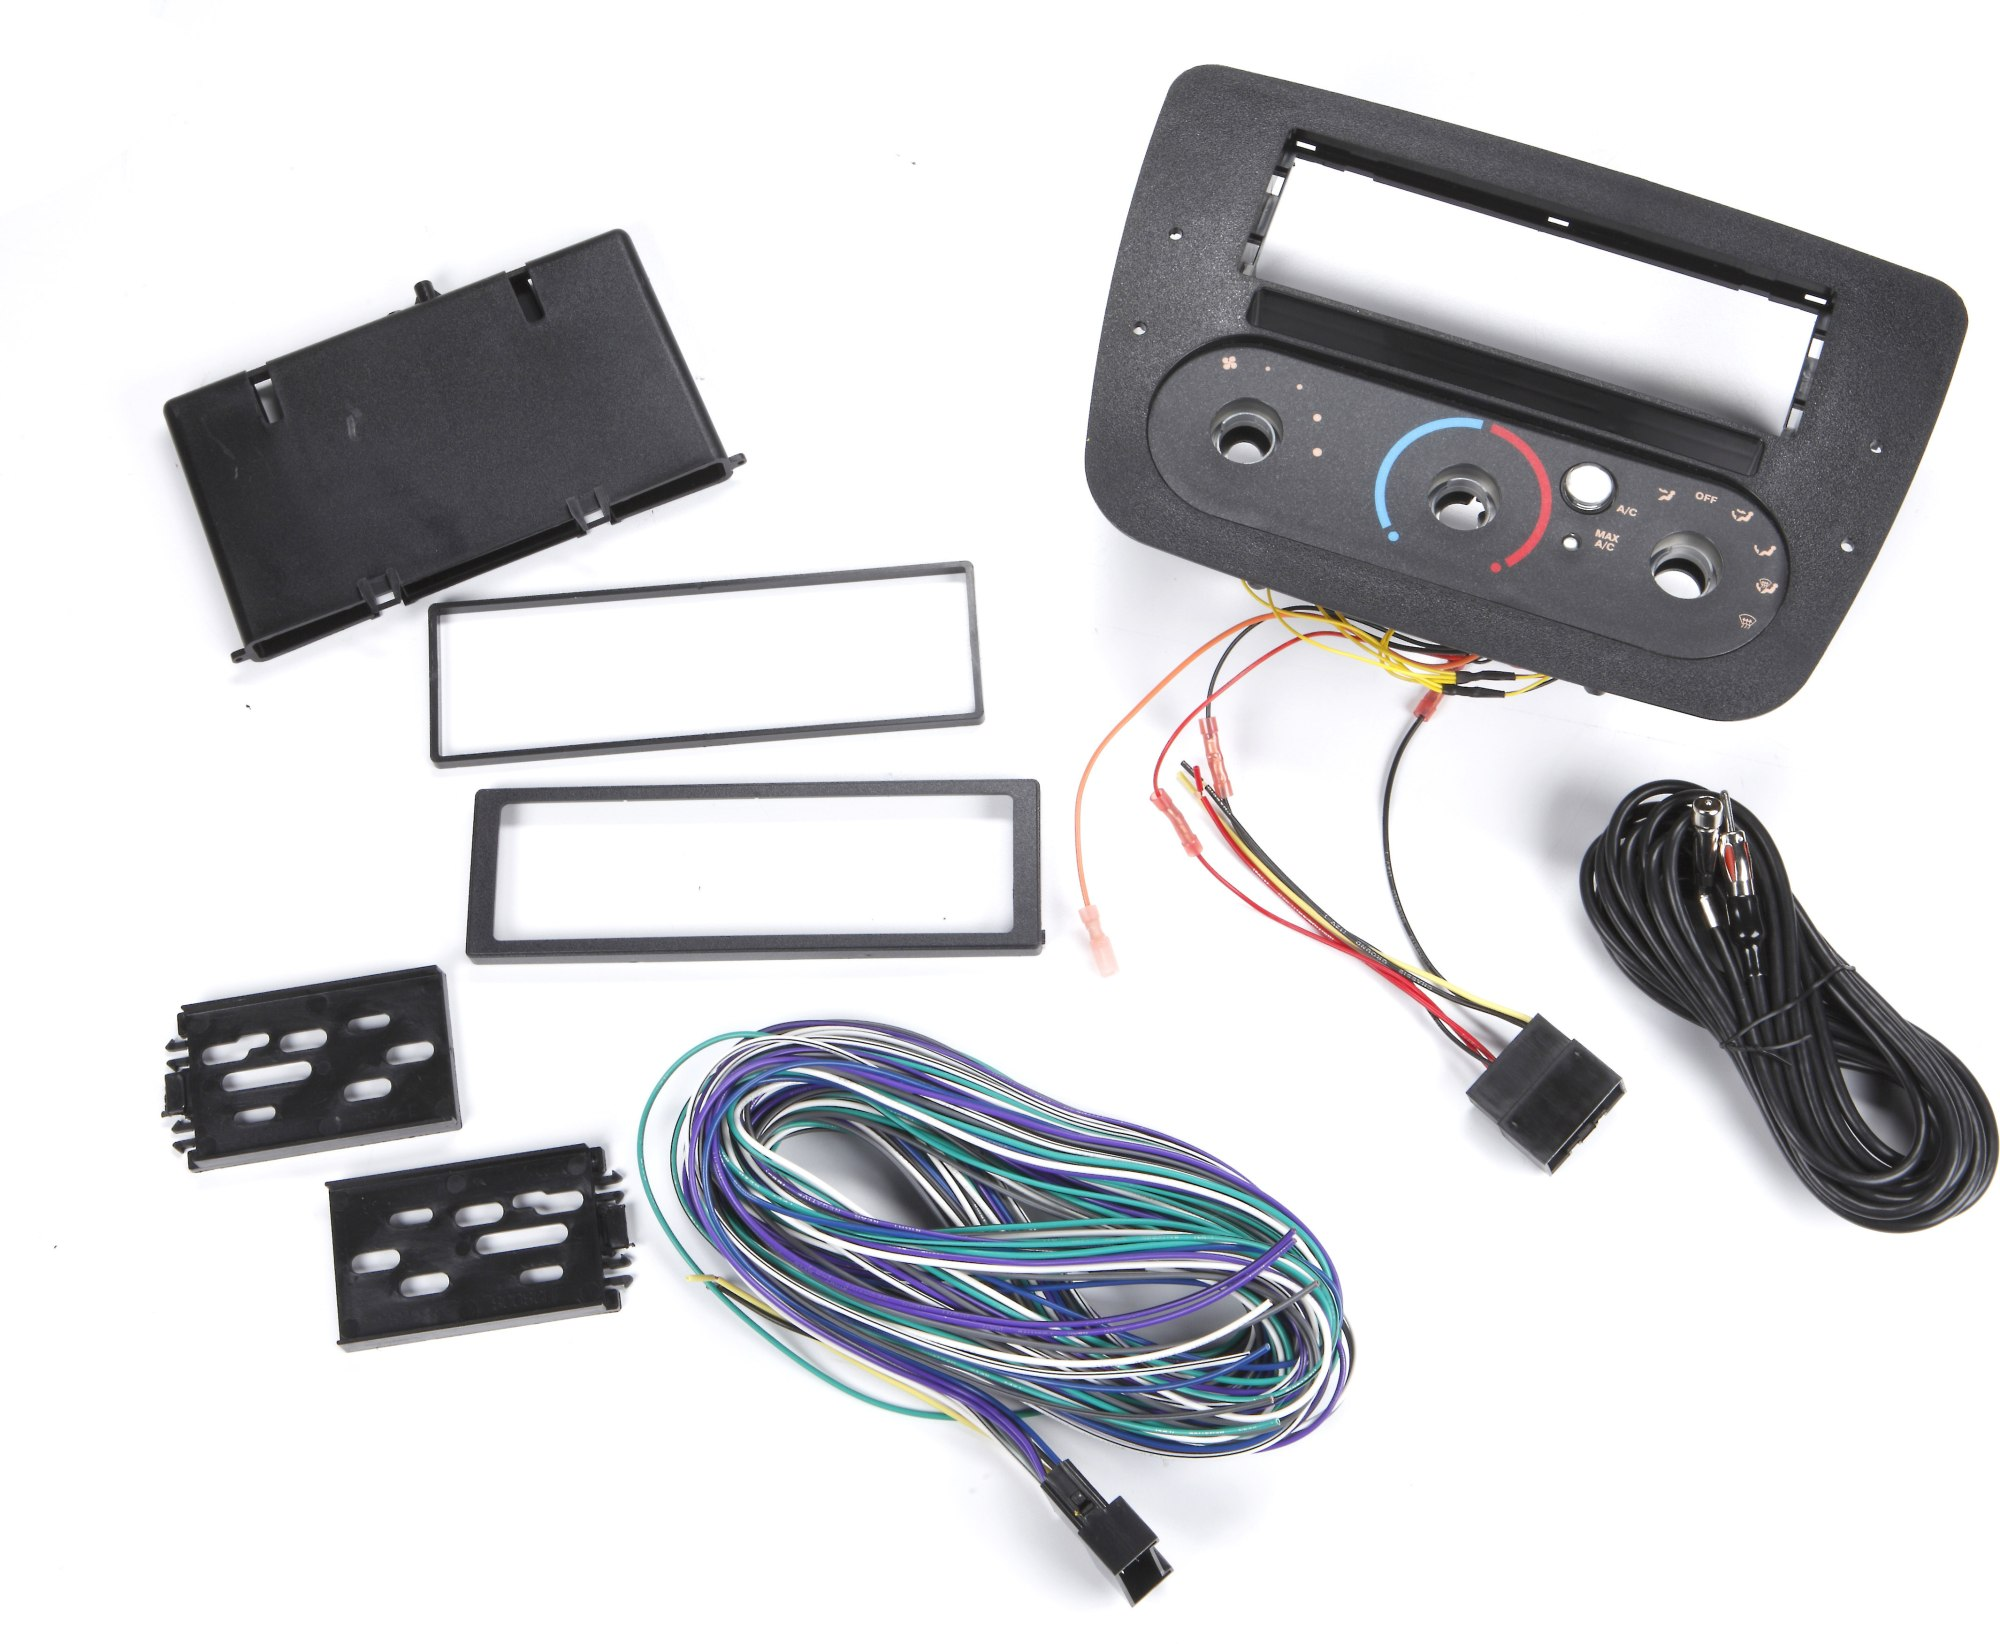 hight resolution of scosche fd1380b dash and wiring kit install and connect a new car stereo in select 2000 up ford taurus and mercury sable vehicles with rotary climate